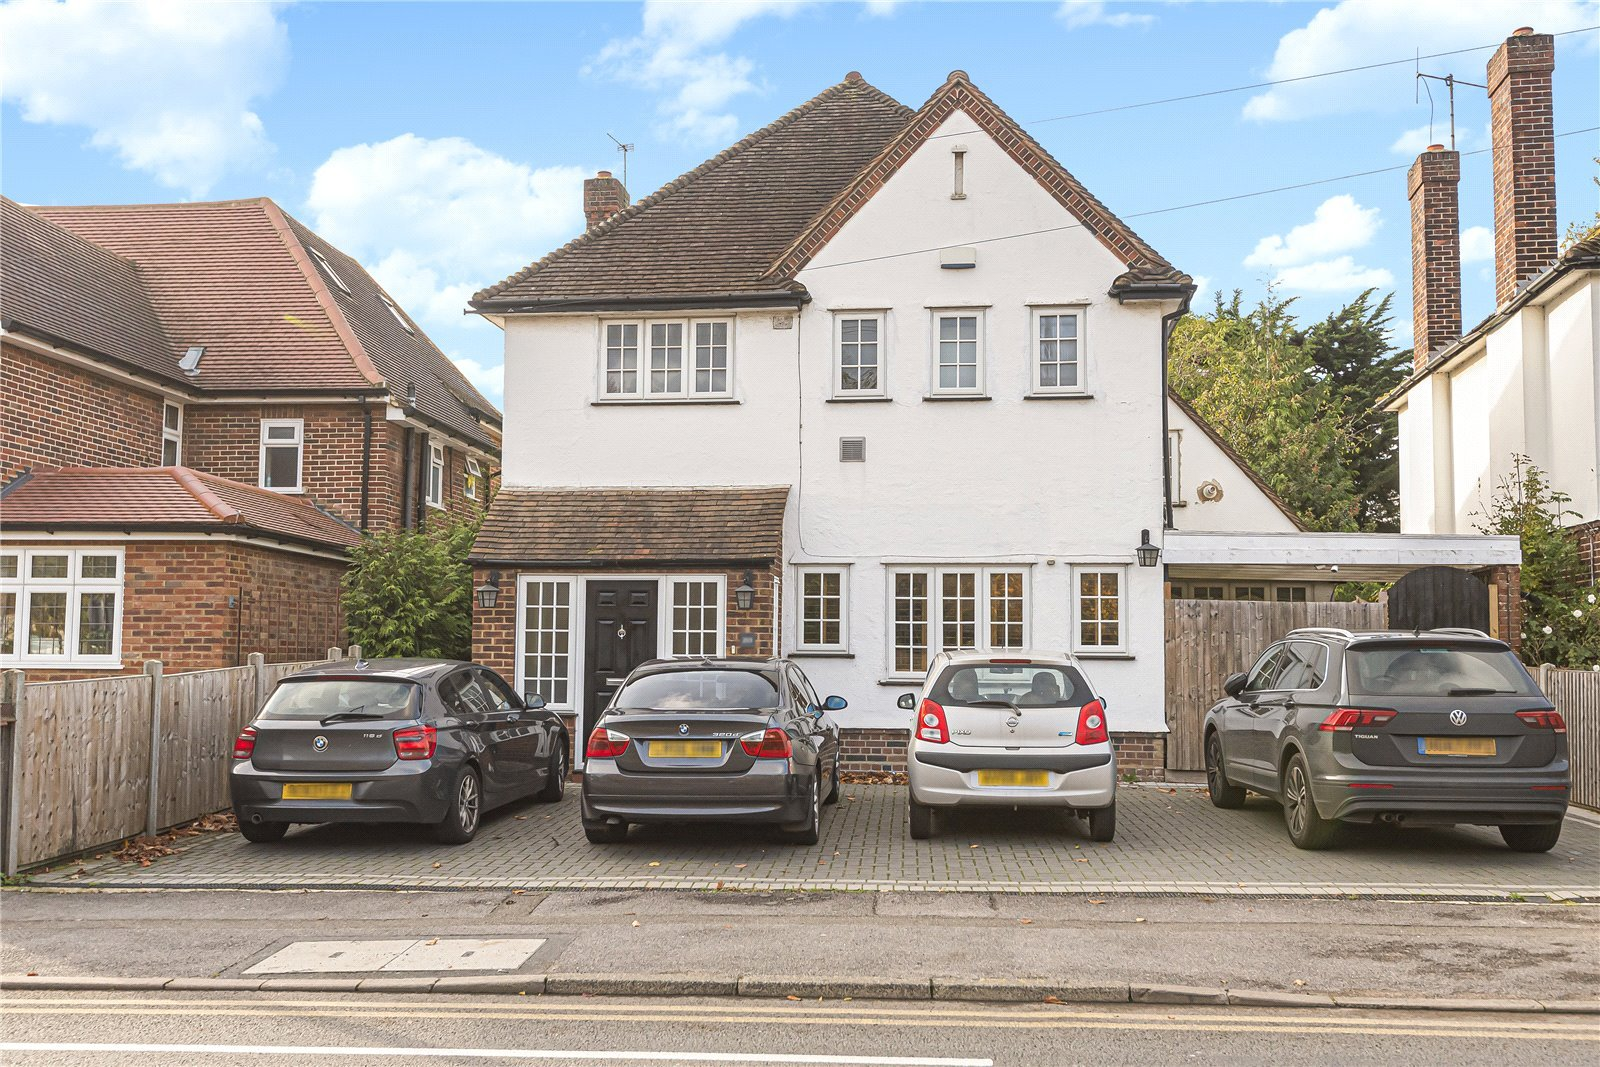 3 Bedroom House For Sale In Park Road North Uxbridge Middlesex Ub8 Gibbs Gillespie